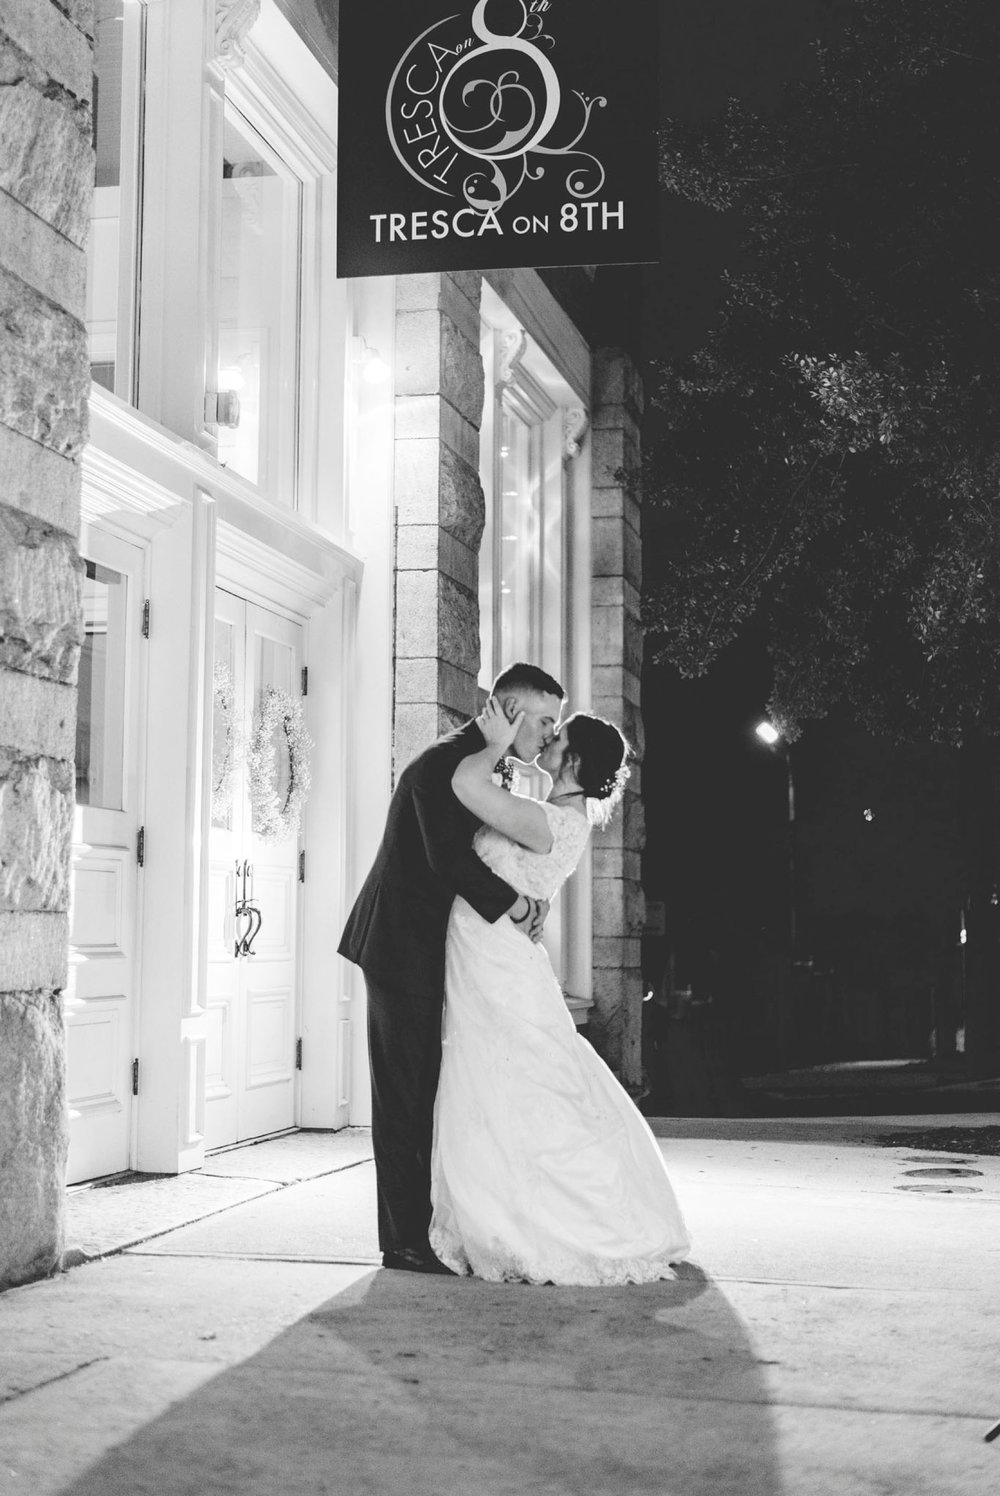 Trescaon8th_DowntownLynchburg_Virginiaweddingphotographer 98.jpg